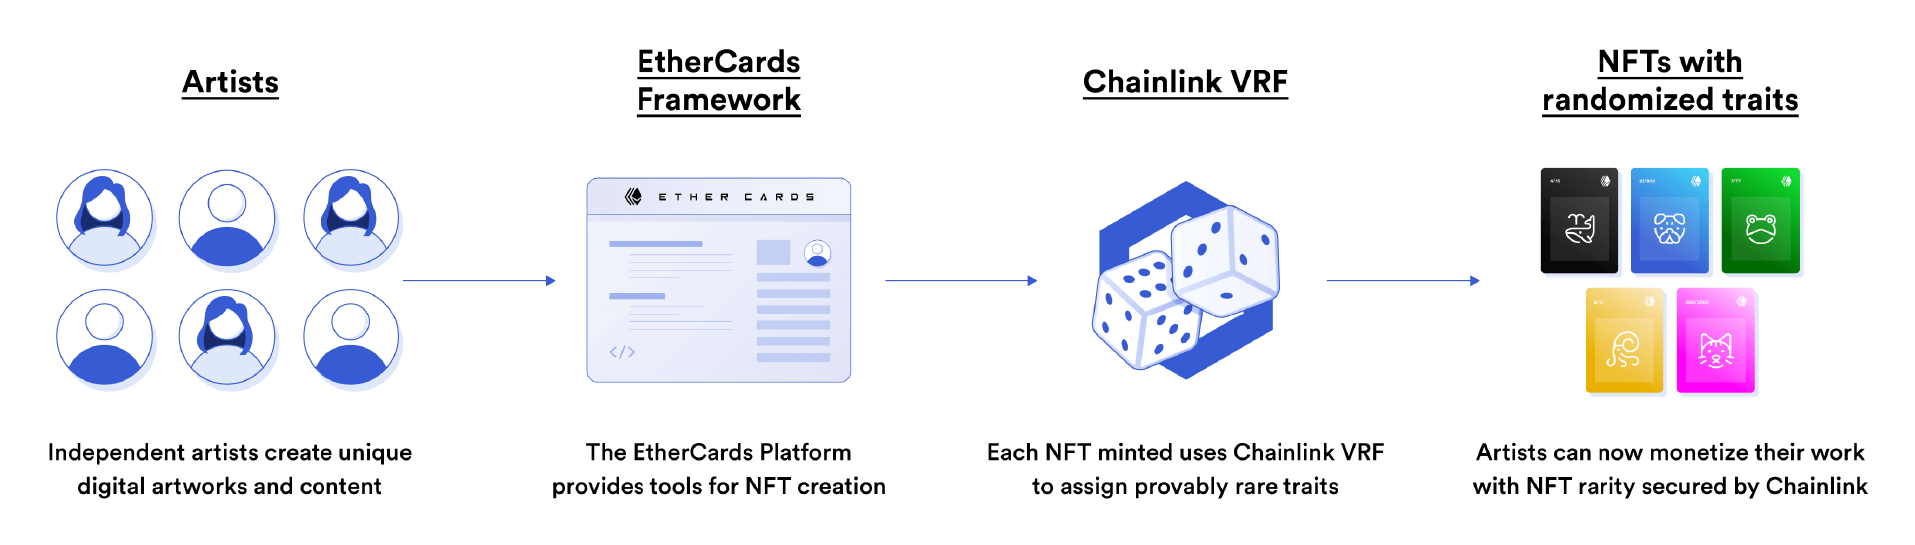 Chainlink VRF powers Ether Cards with verifiable randomness